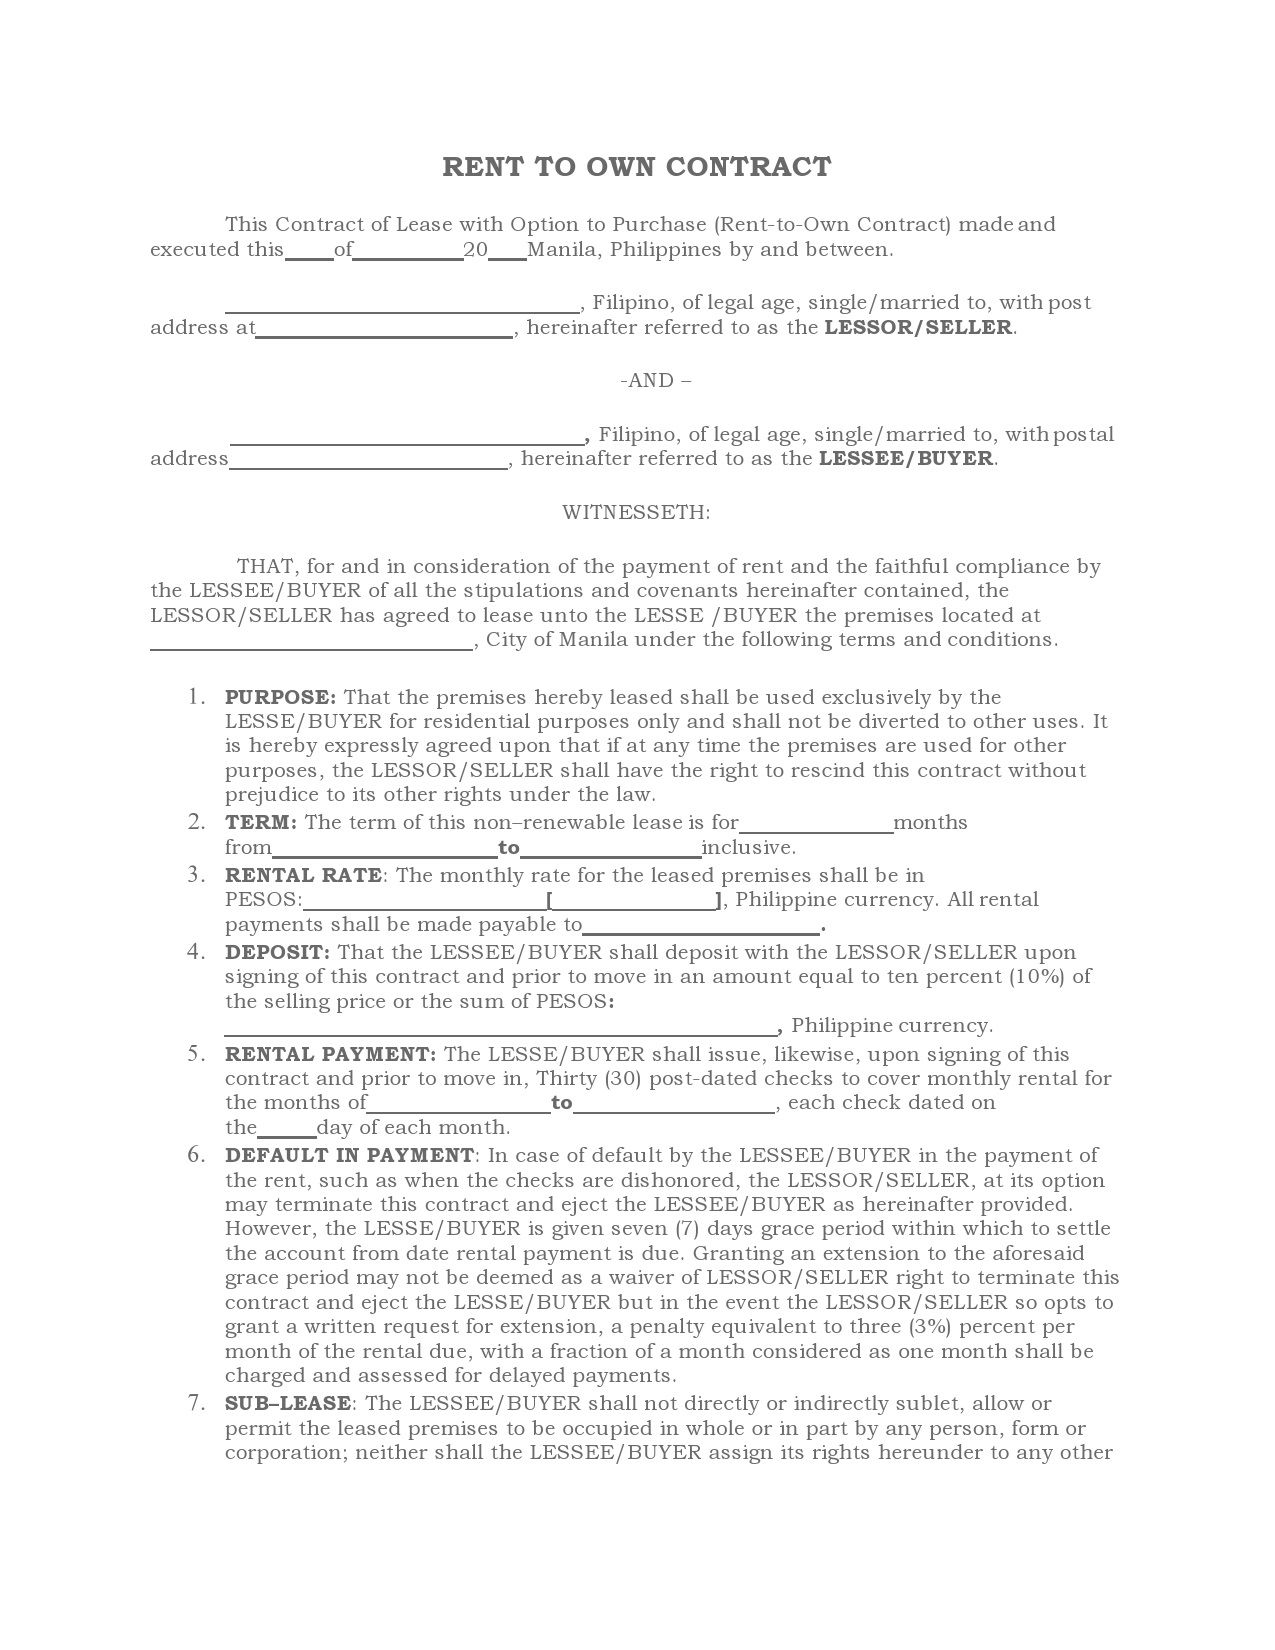 006 Excellent Rent To Own Contract Template Philippine Image  Philippines SampleFull